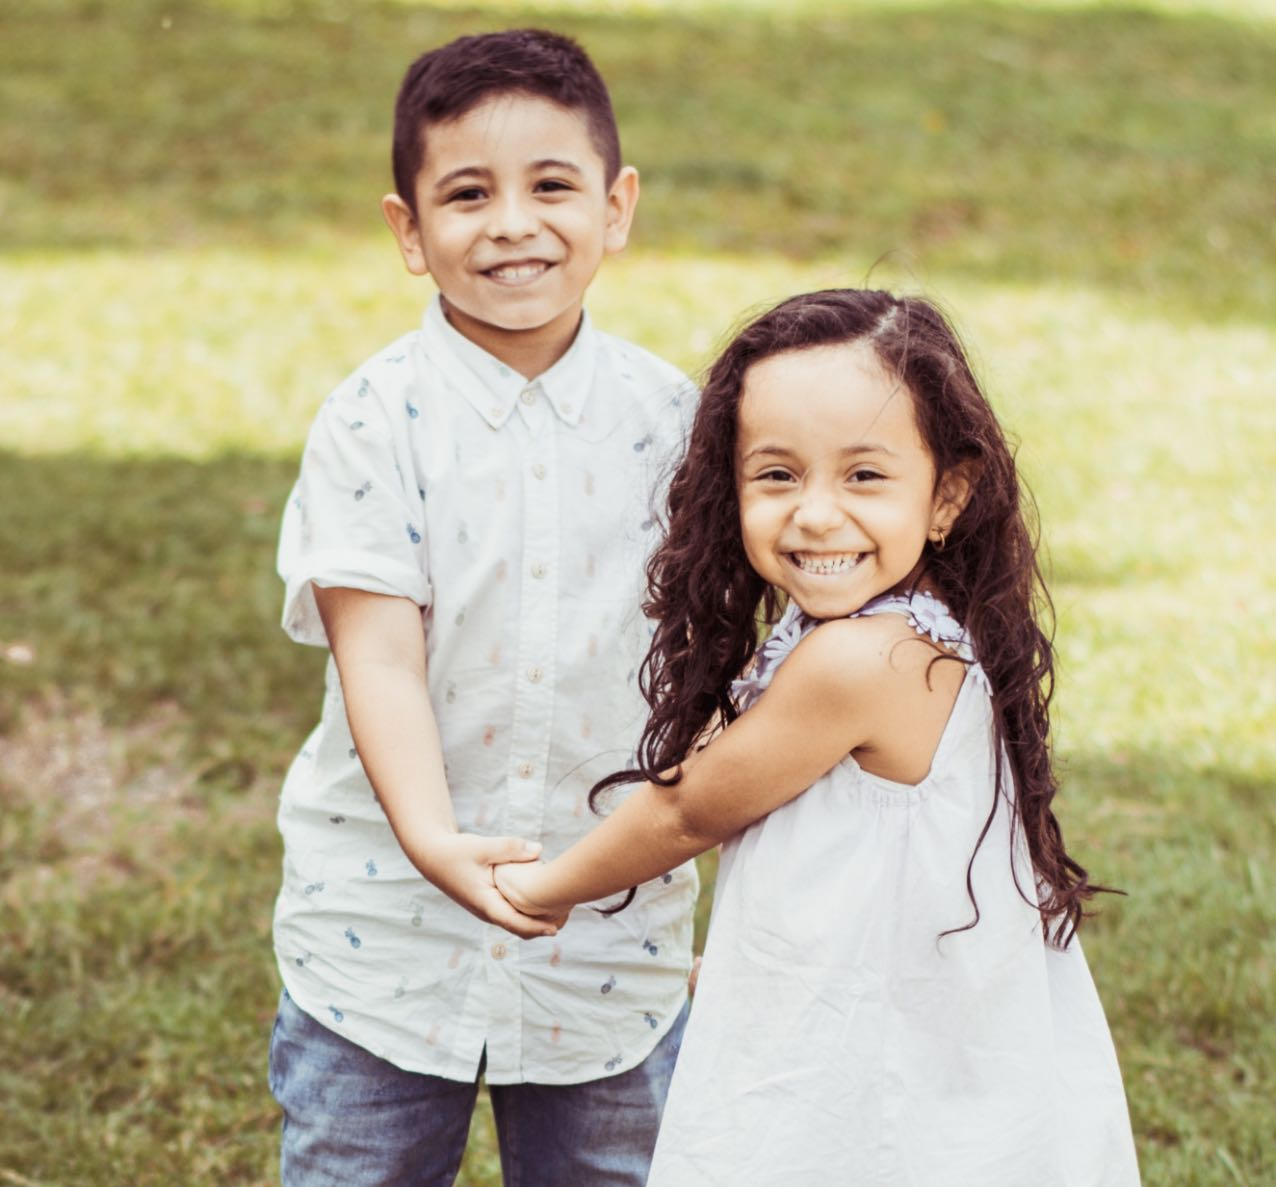 Photo of two smiling children standing outside